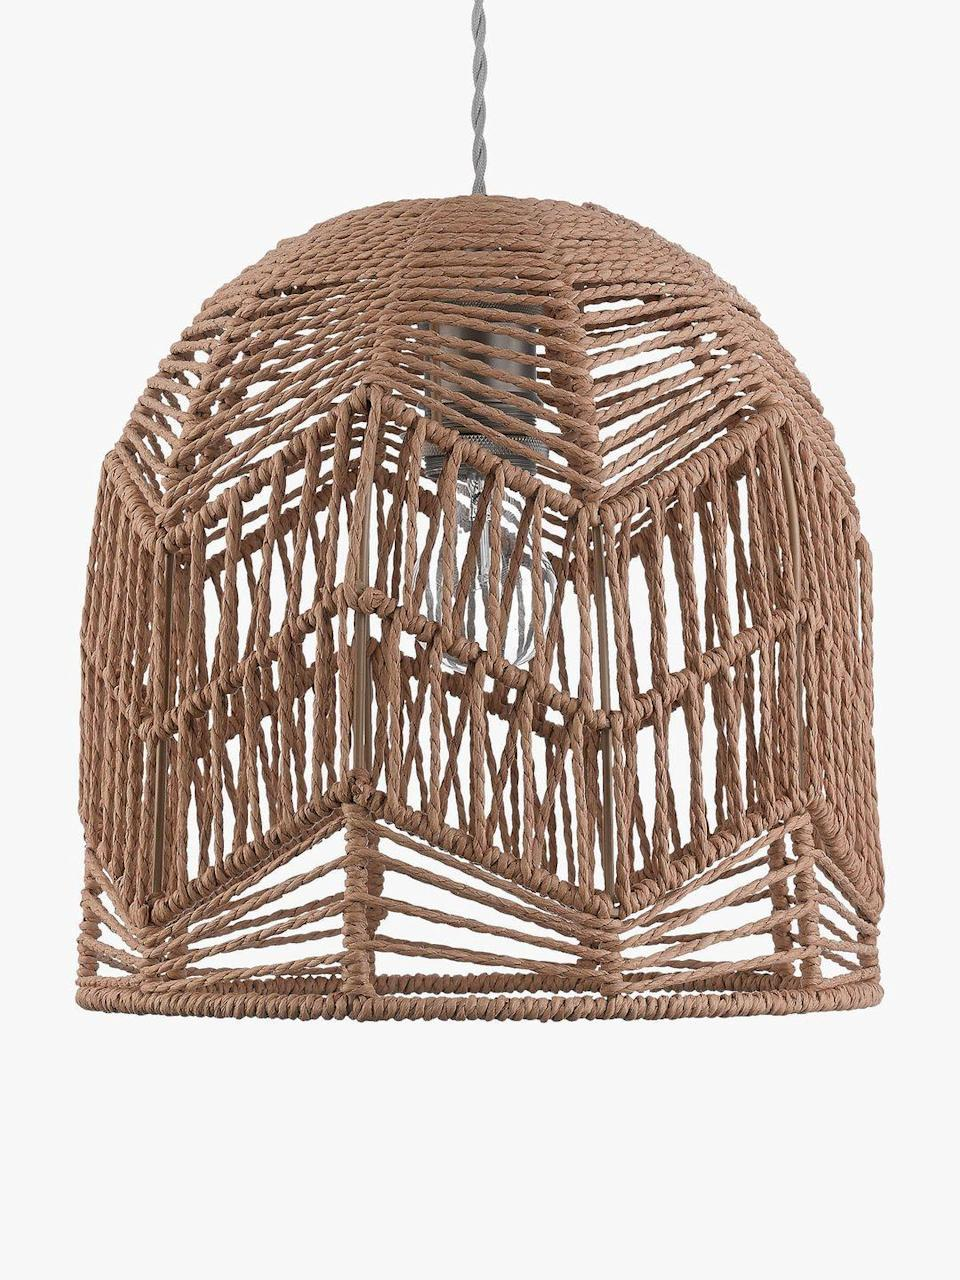 """<p>This John Lewis lampshade introduces organic and handmade elements, ideal for sustainably-minded homeowners who like to surround themselves with natural materials. It works well with neutral colours and plenty of plants.</p><p><strong>Shop now: <a href=""""https://www.johnlewis.com/john-lewis-partners-small-paper-string-easy-to-fit-ceiling-shade/p5111775"""" rel=""""nofollow noopener"""" target=""""_blank"""" data-ylk=""""slk:Small Paper String Ceiling Lampshade at John Lewis"""" class=""""link rapid-noclick-resp"""">Small Paper String Ceiling Lampshade at John Lewis</a></strong></p>"""